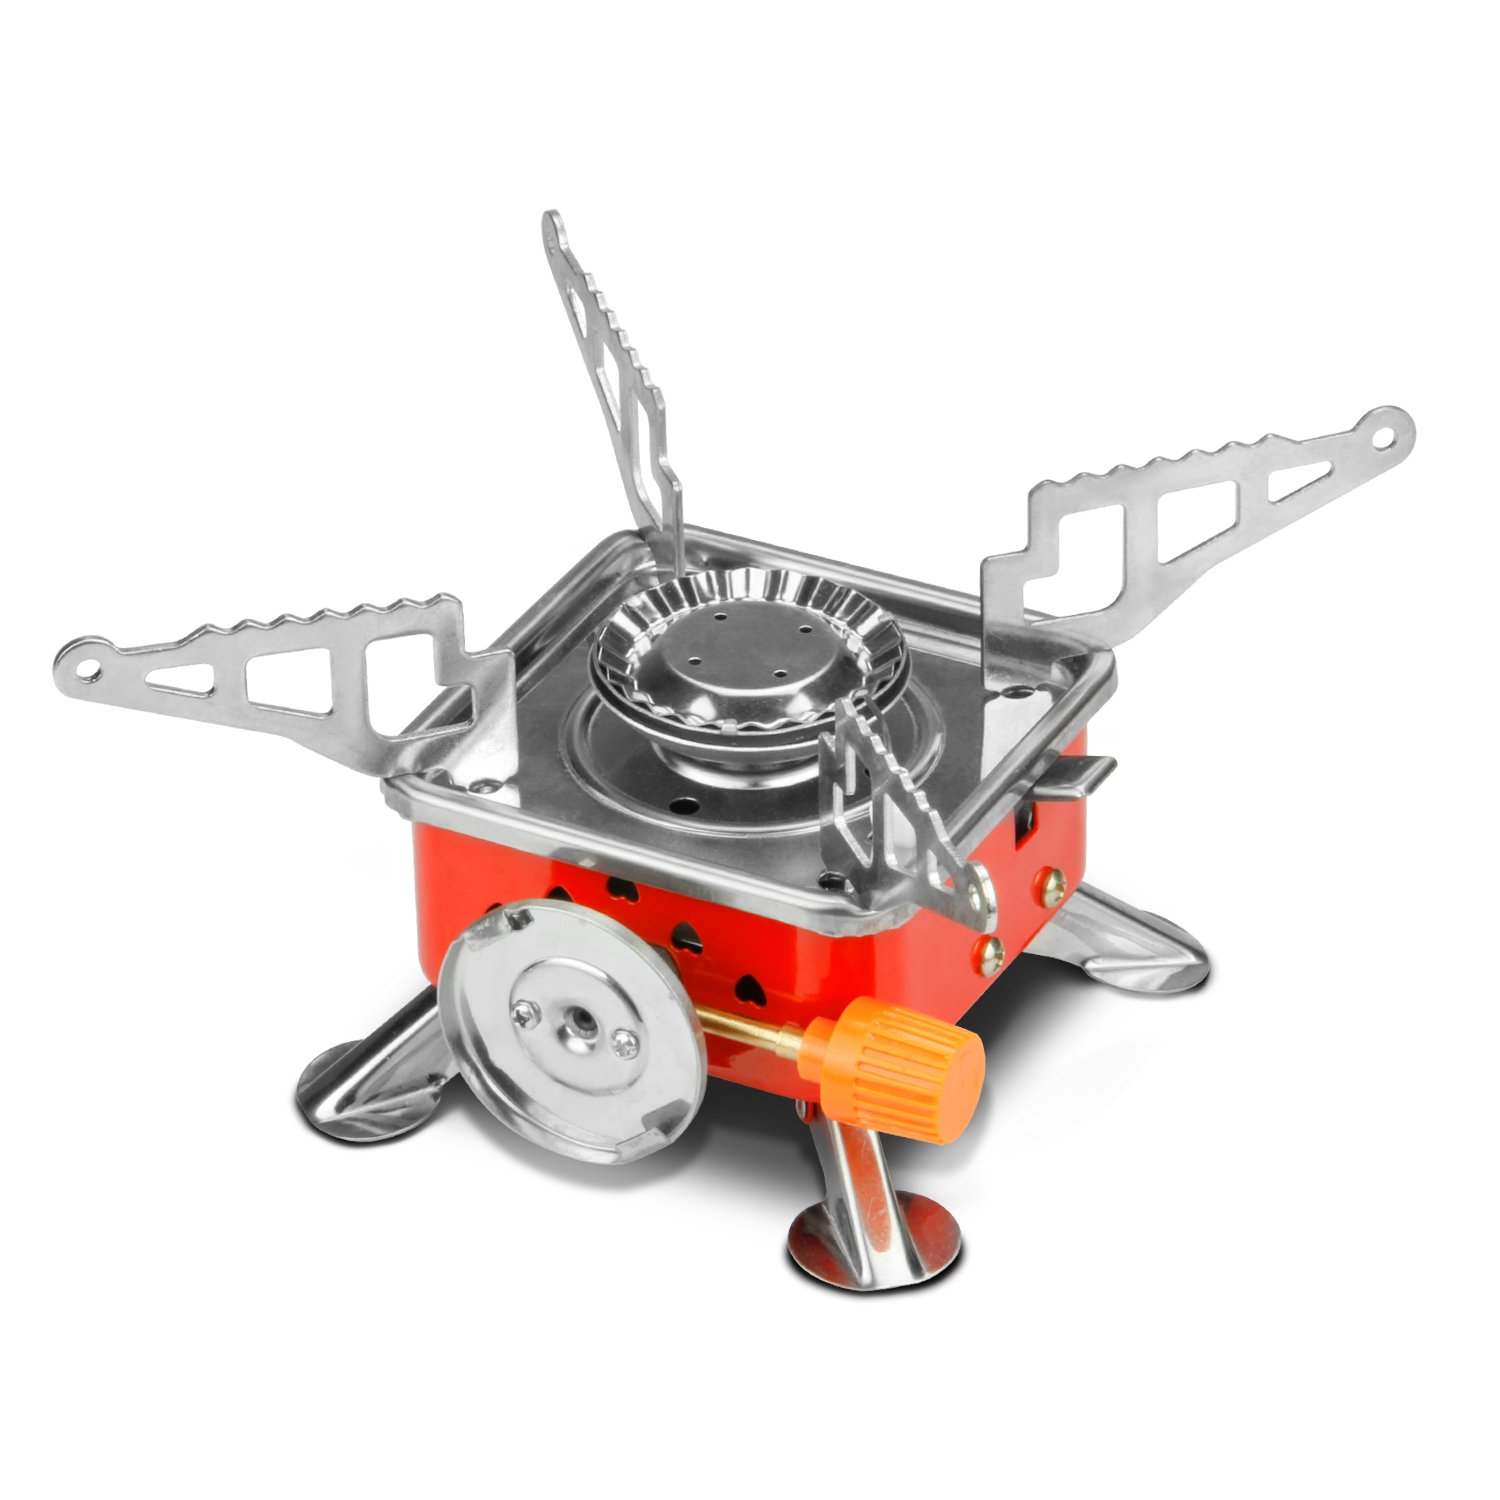 Etekcity E-gear Portable Collapsible Outdoor Backpacking Gas Camping Stove Burner (Orange)